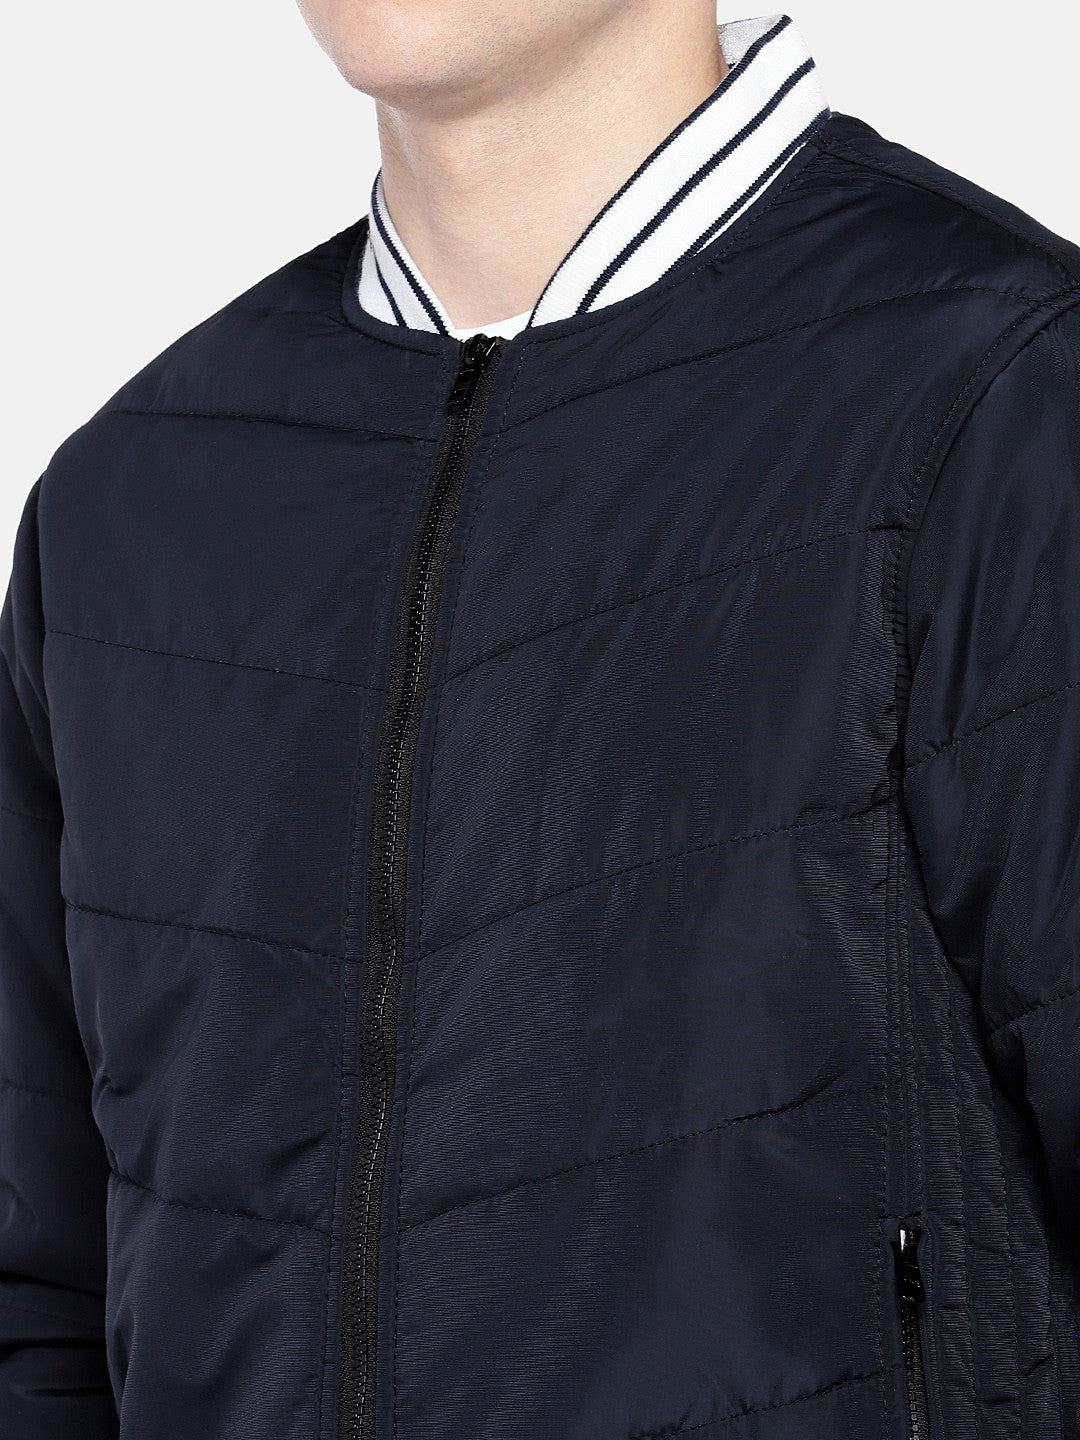 Navy Blue Solid Bomber-5